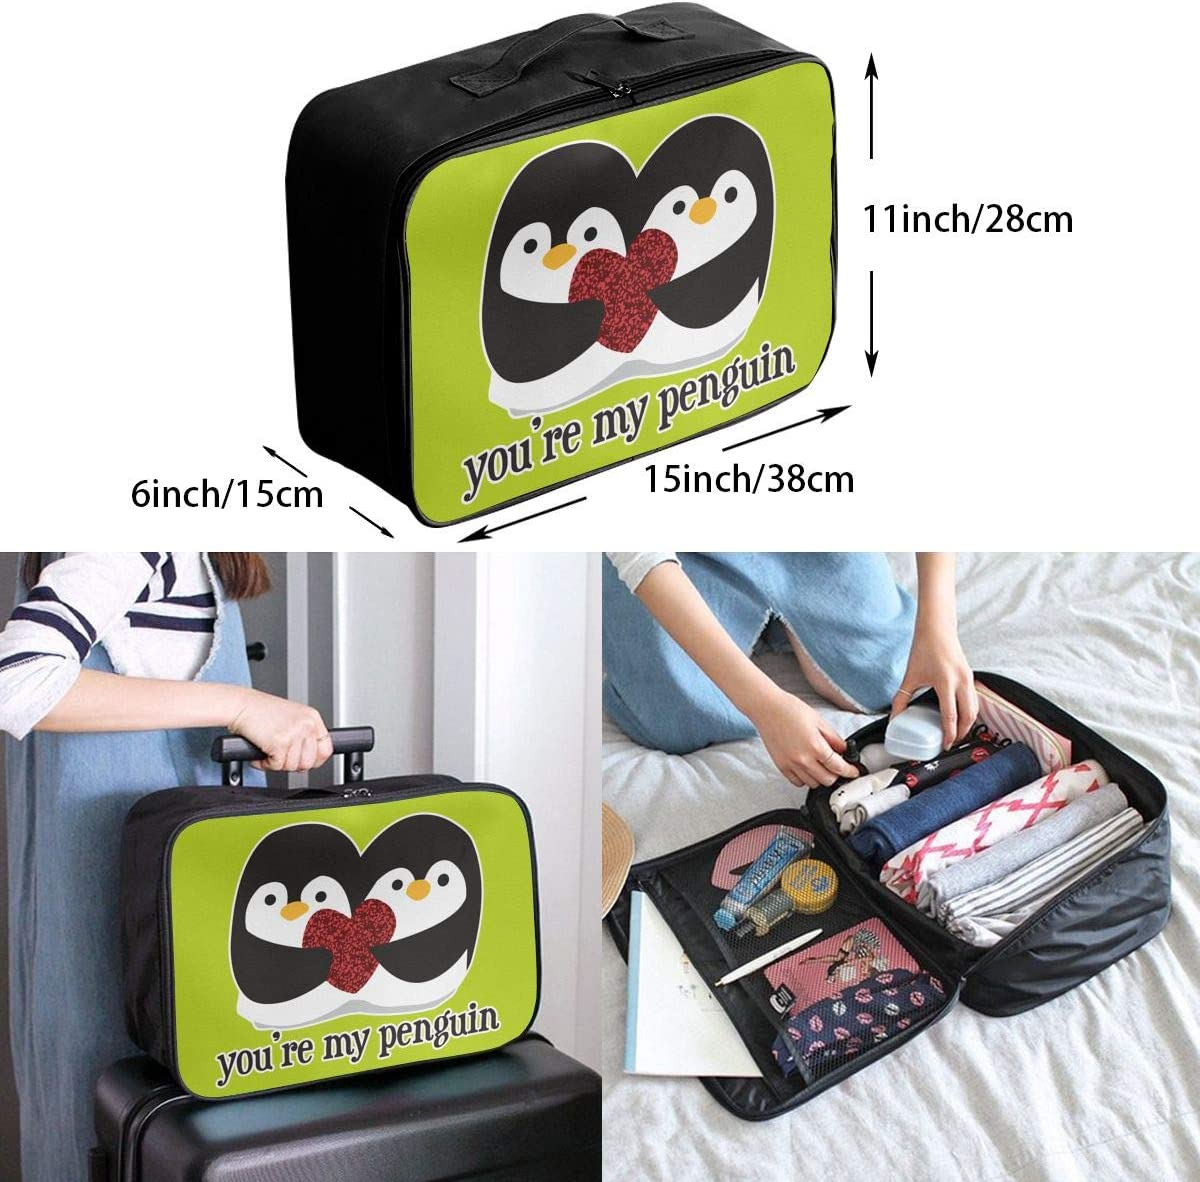 You Are My Penguin Carry Lightweight Large Capacity Portable Outdoor Luggage Trolley Bag